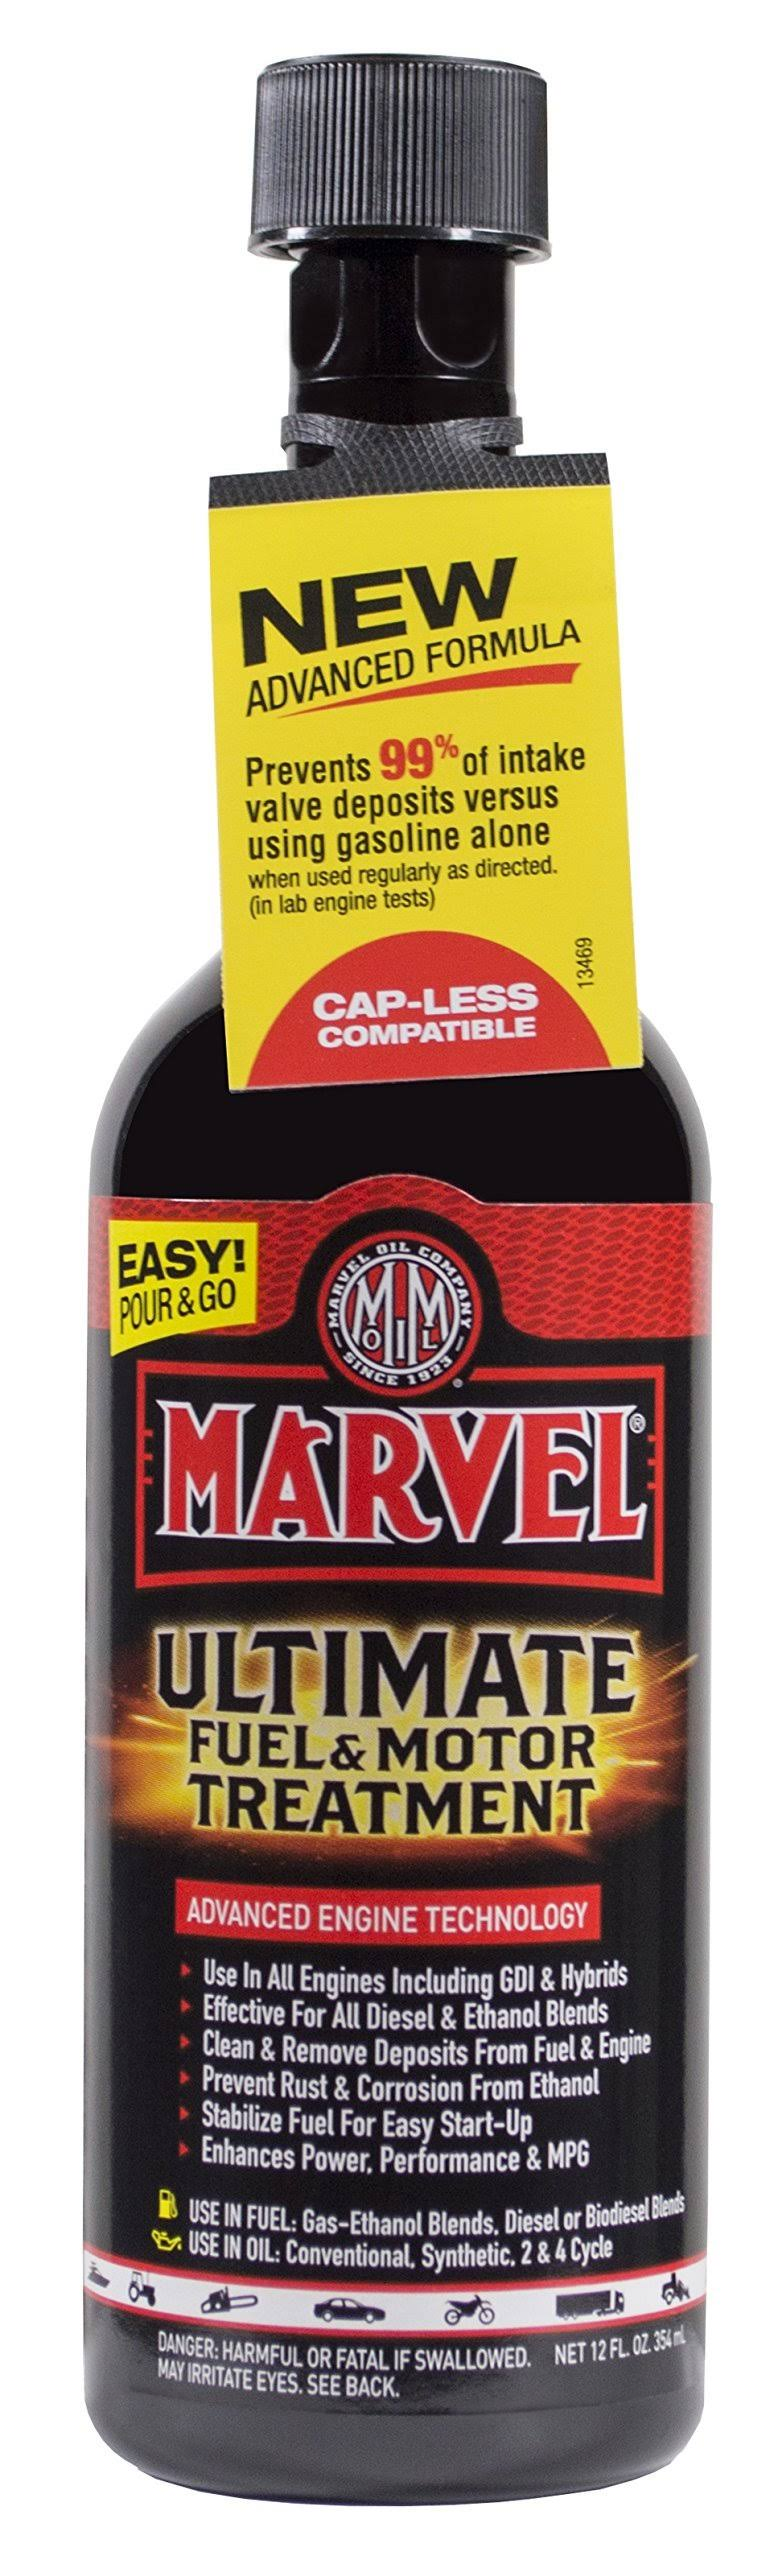 Marvel Mystery Oil Ultimate Fuel and Motor Treatment - 12oz